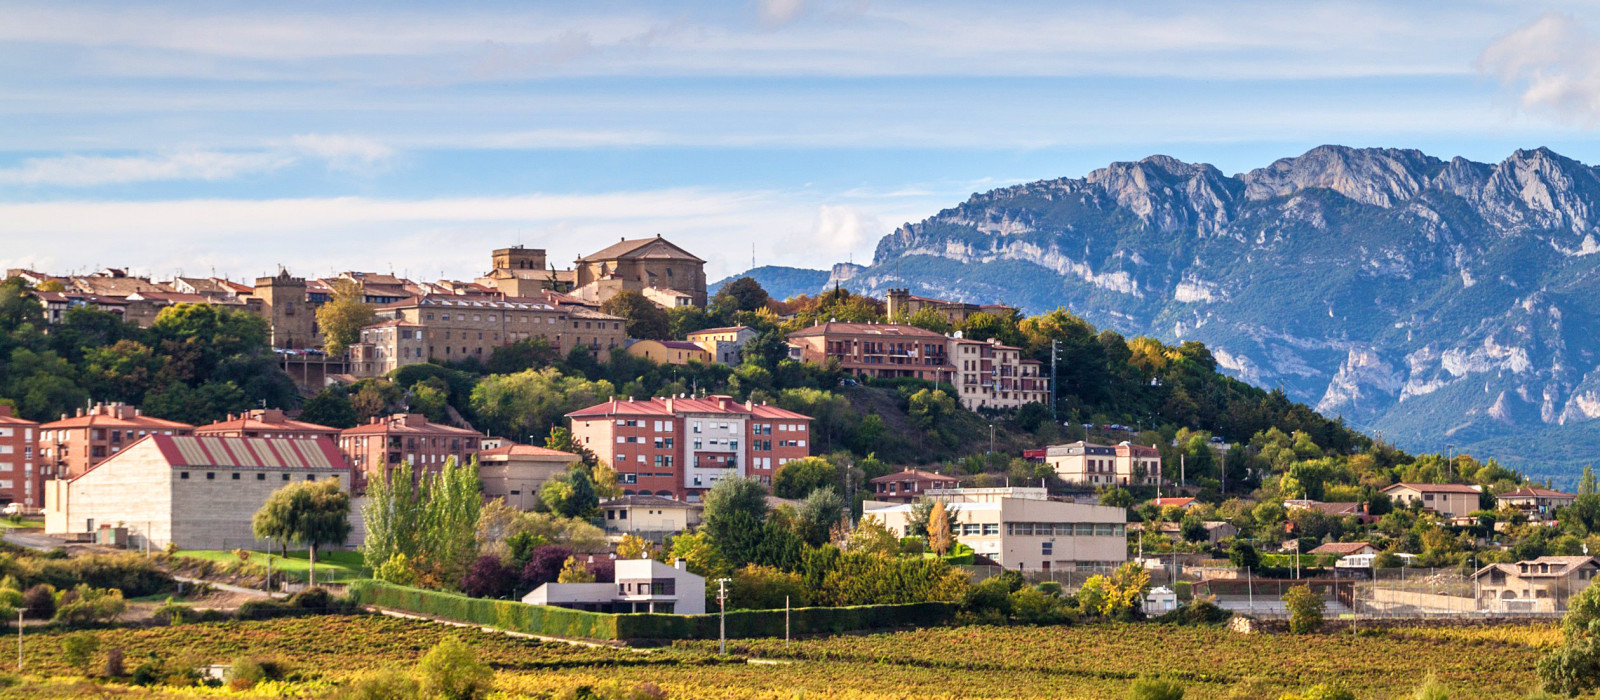 Destination La Rioja Region Spain